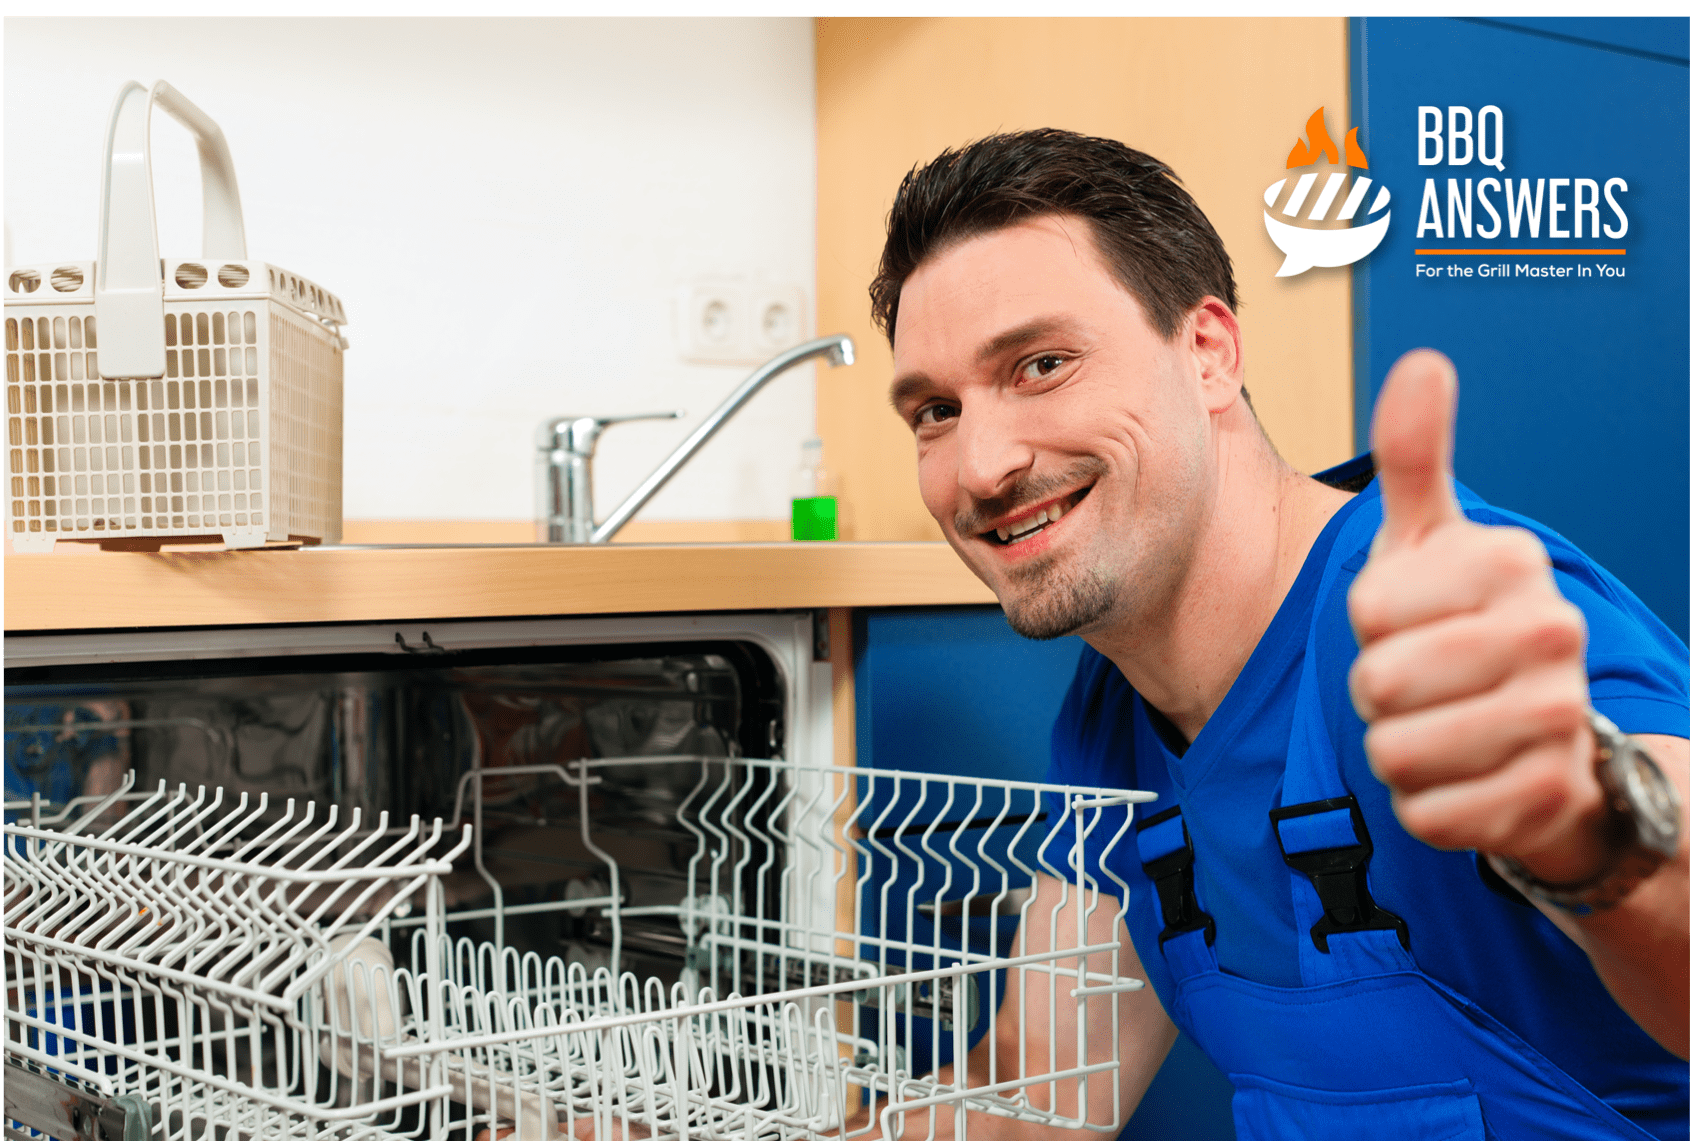 Cleaning Large-sized BBQ grills in Dishwasher   BBQanswers